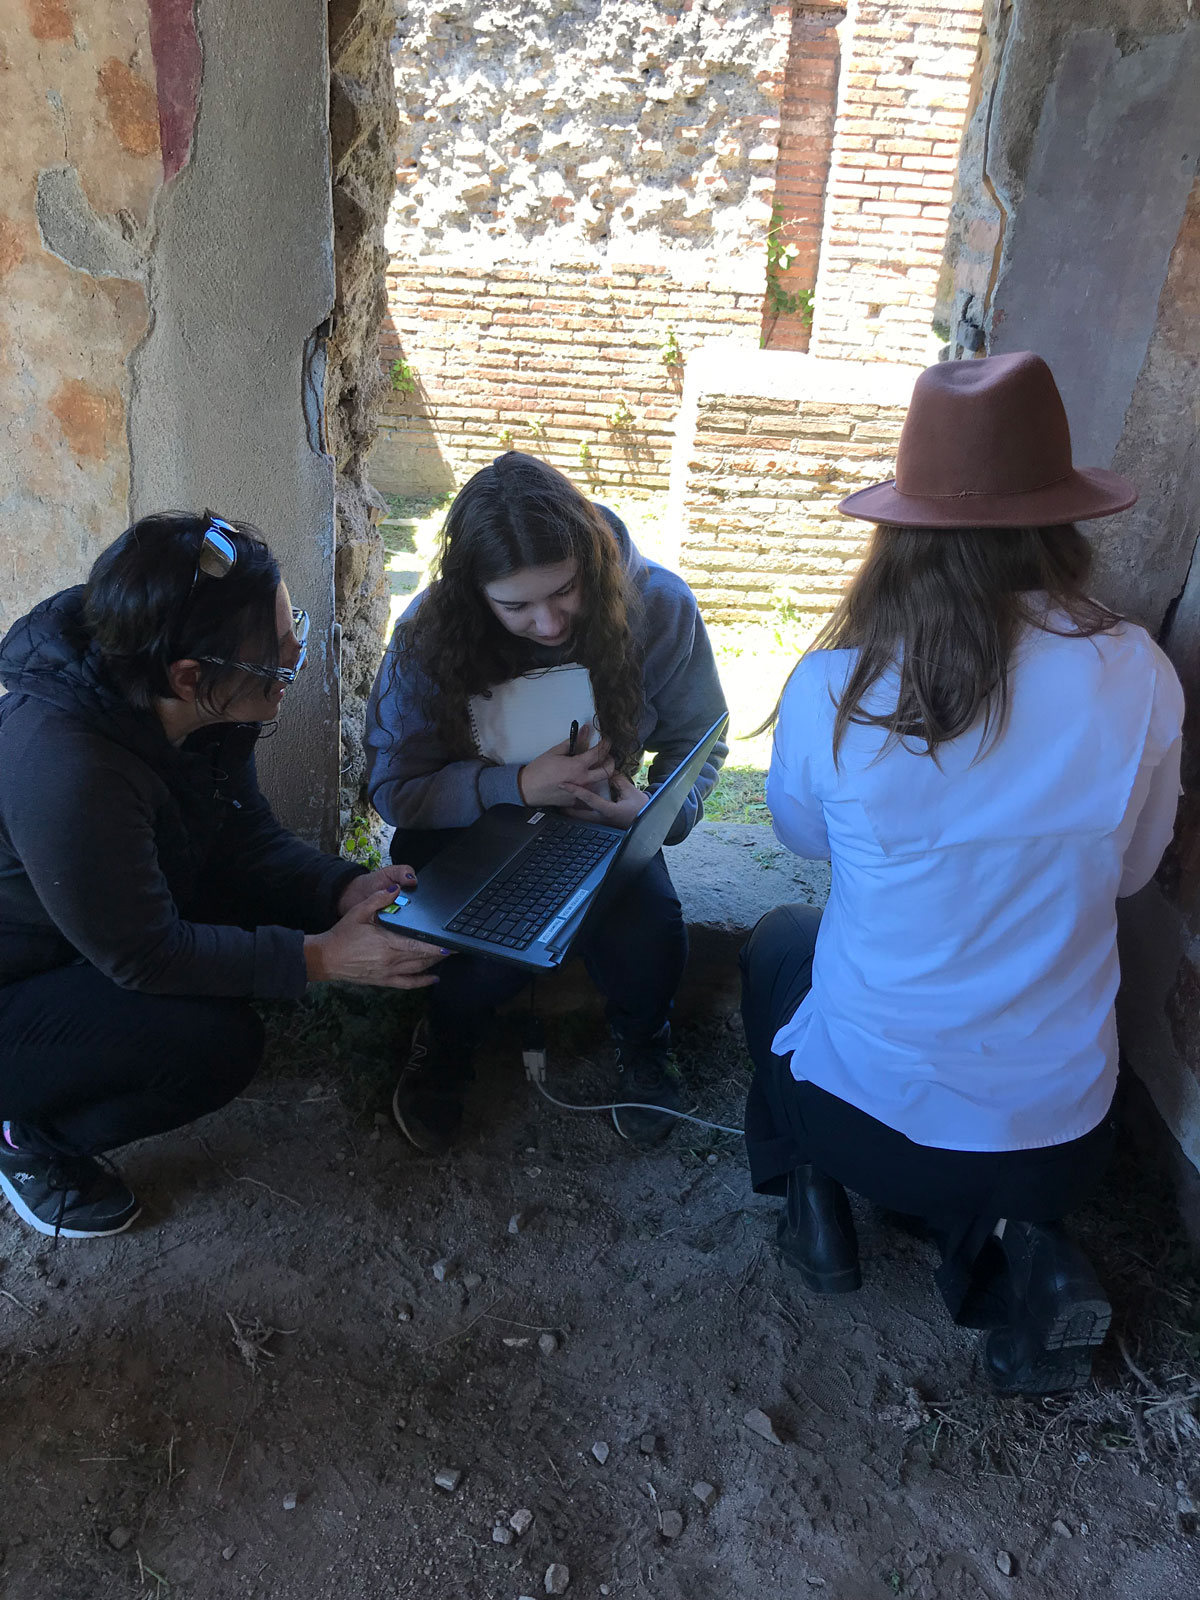 Researchers are crouched next to an ancient wall, looking over data on a laptop